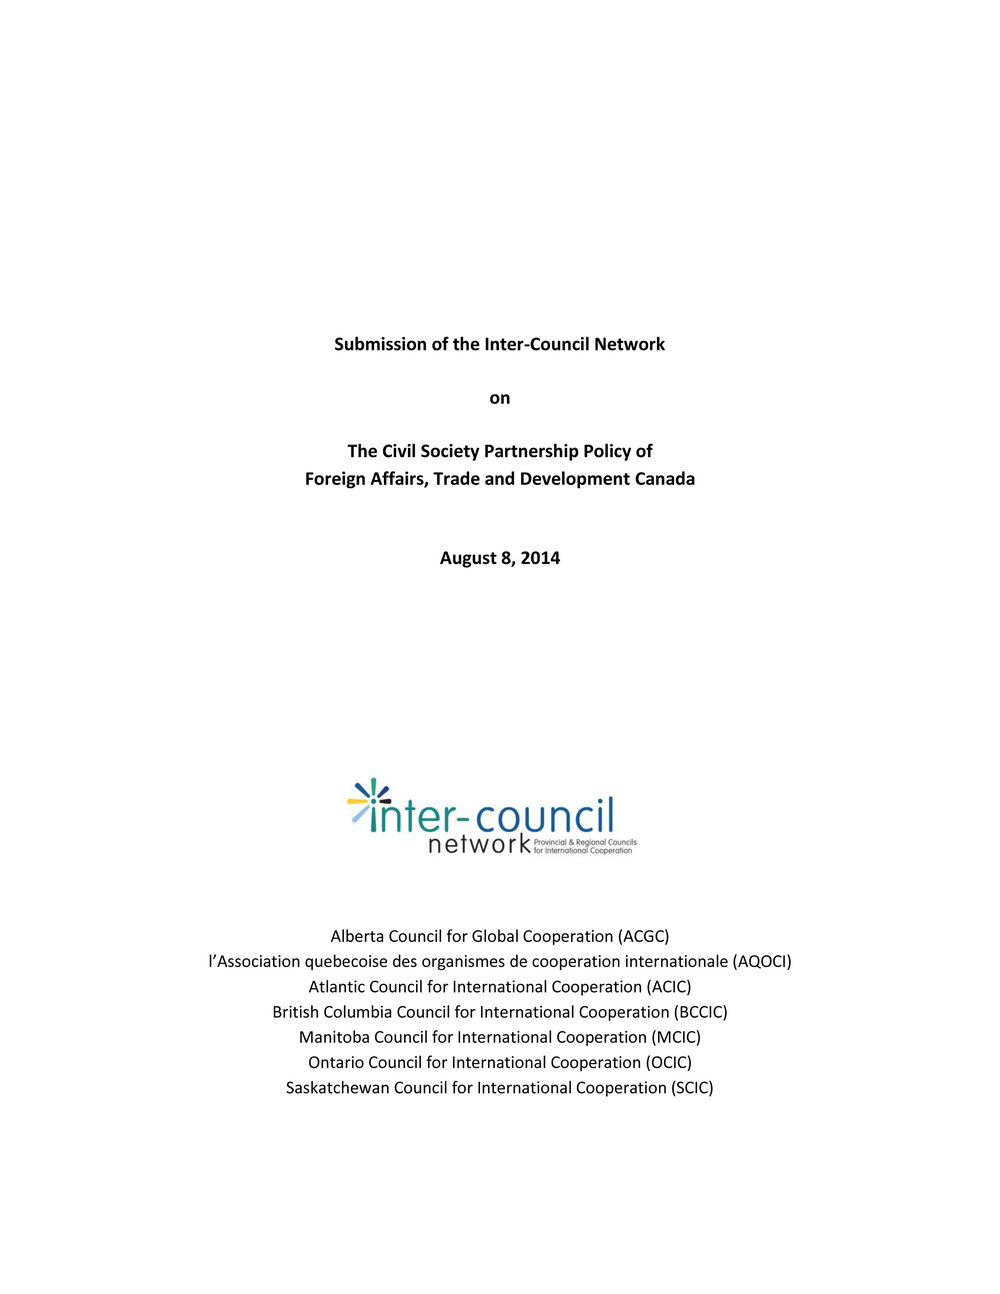 ICN's Submission to Global Affairs Canada regarding the Civil Society Partnership Policy, August 2014